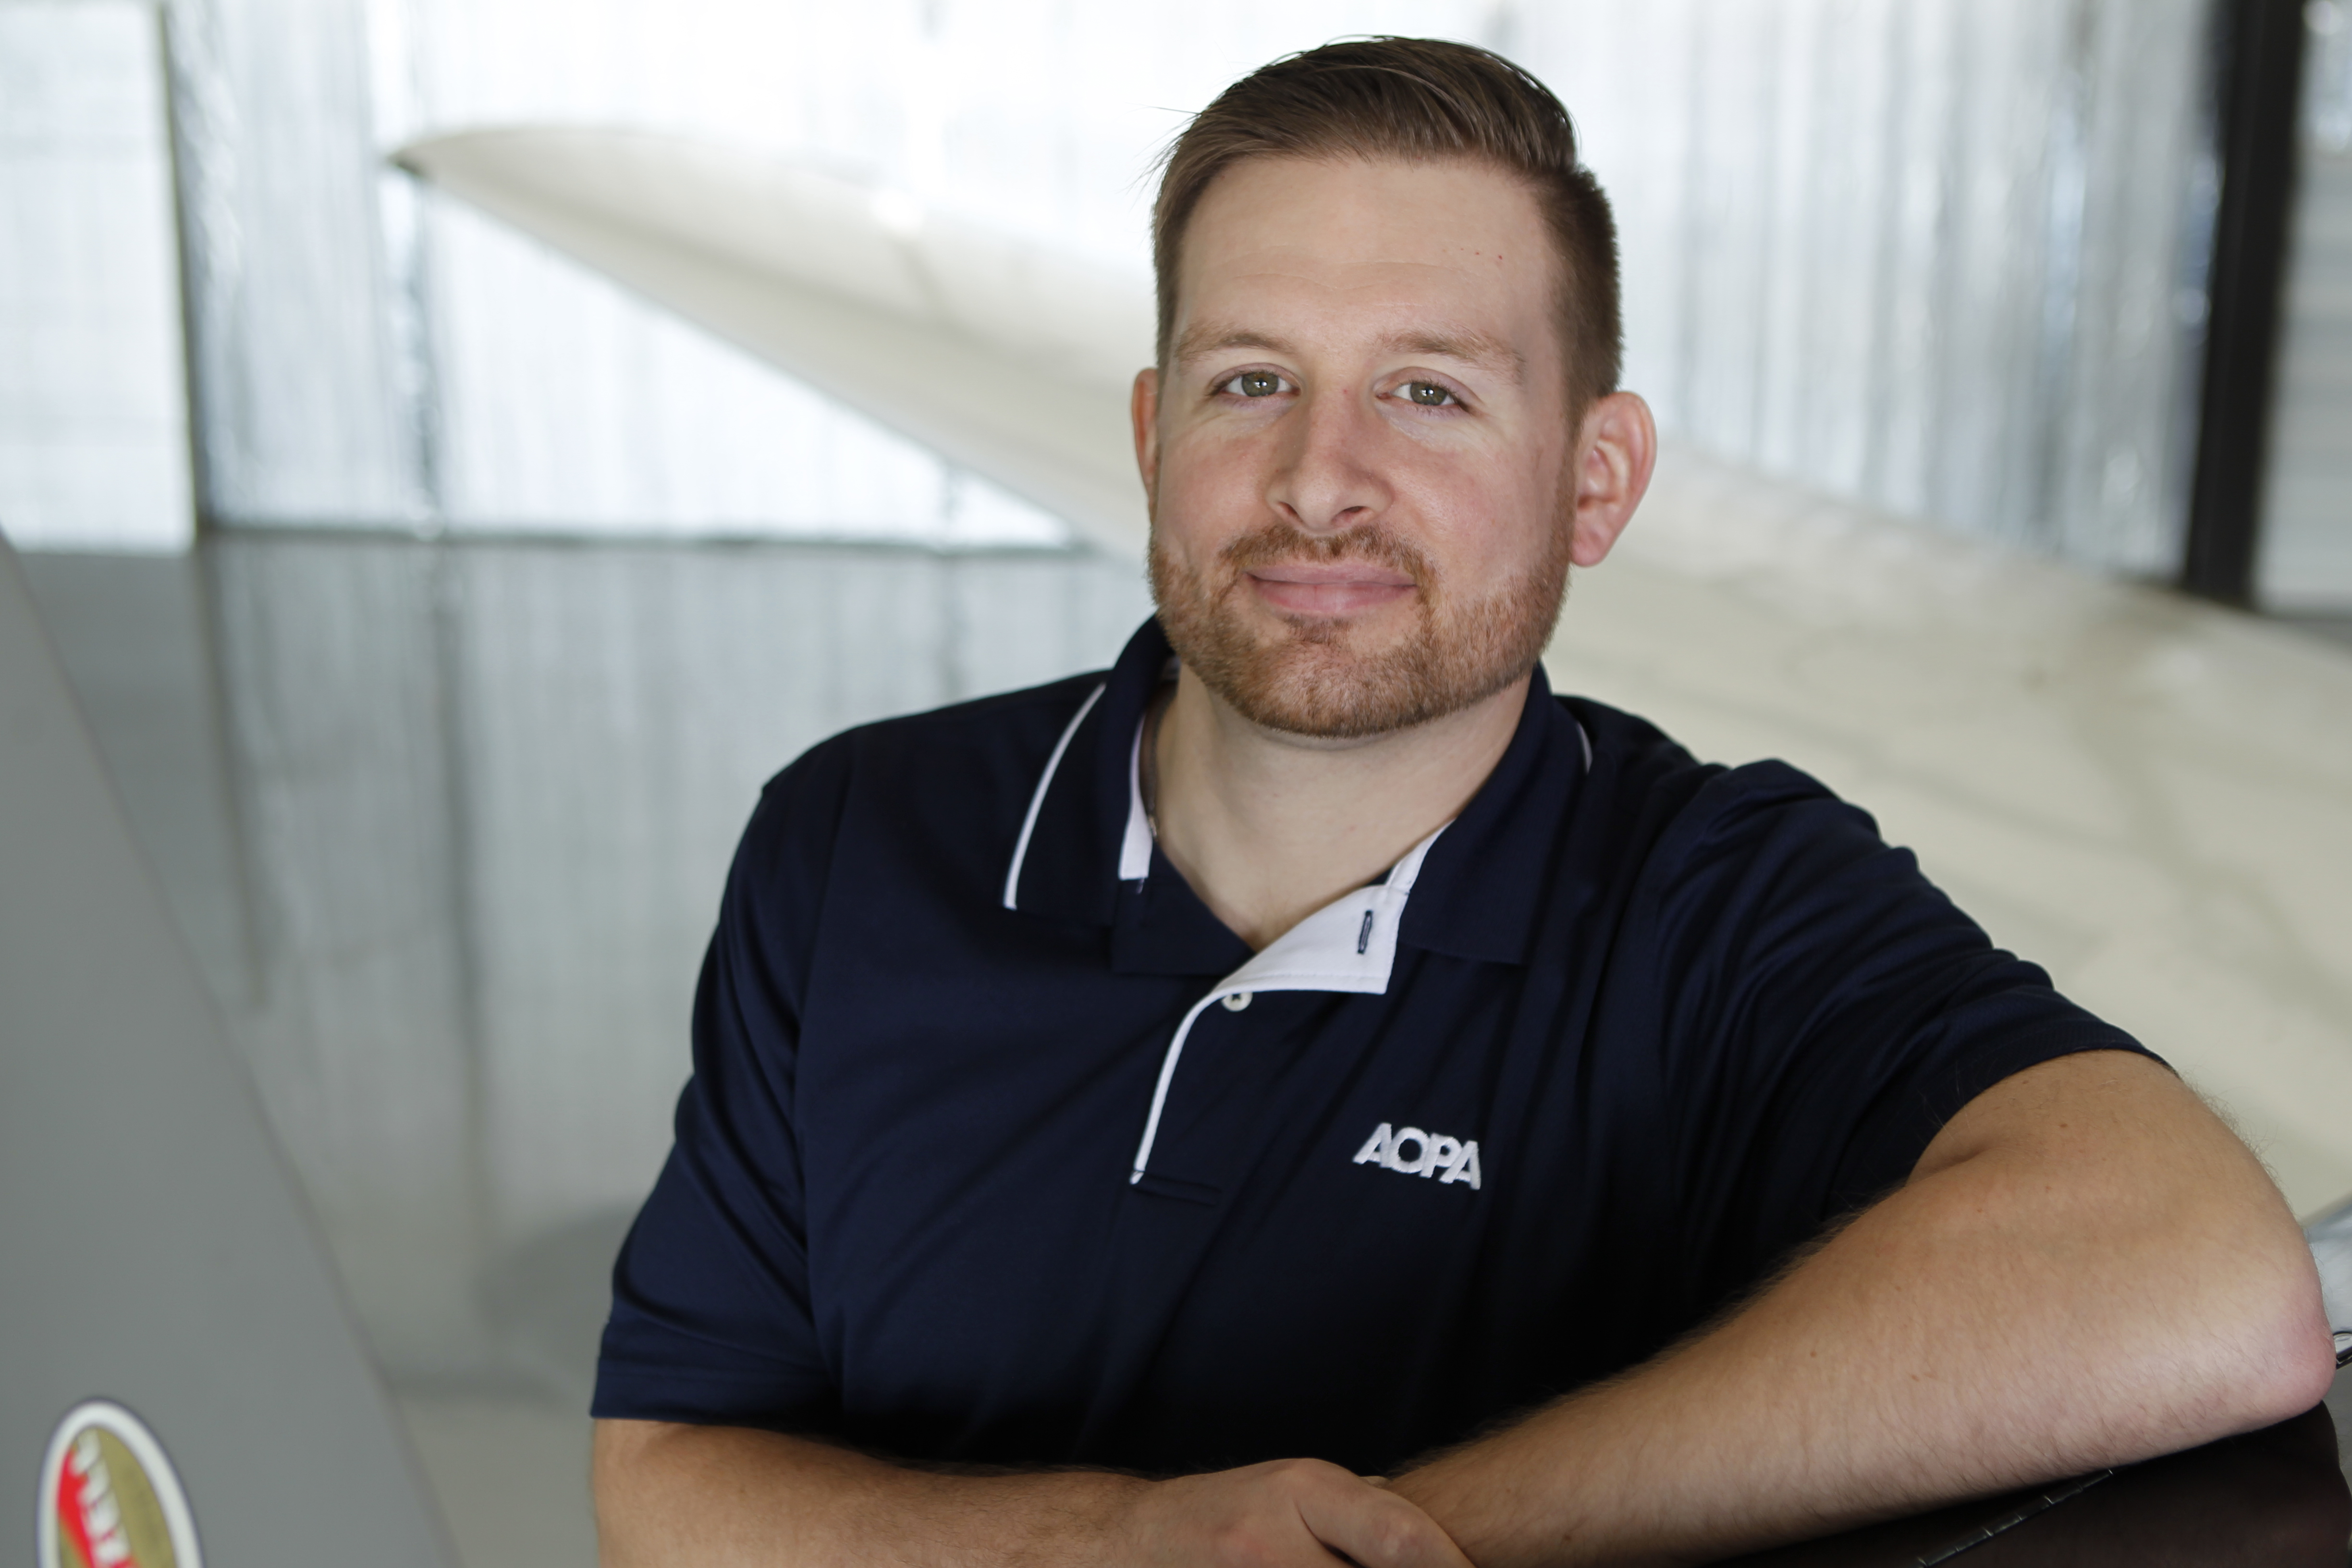 AOPA Regional Manager